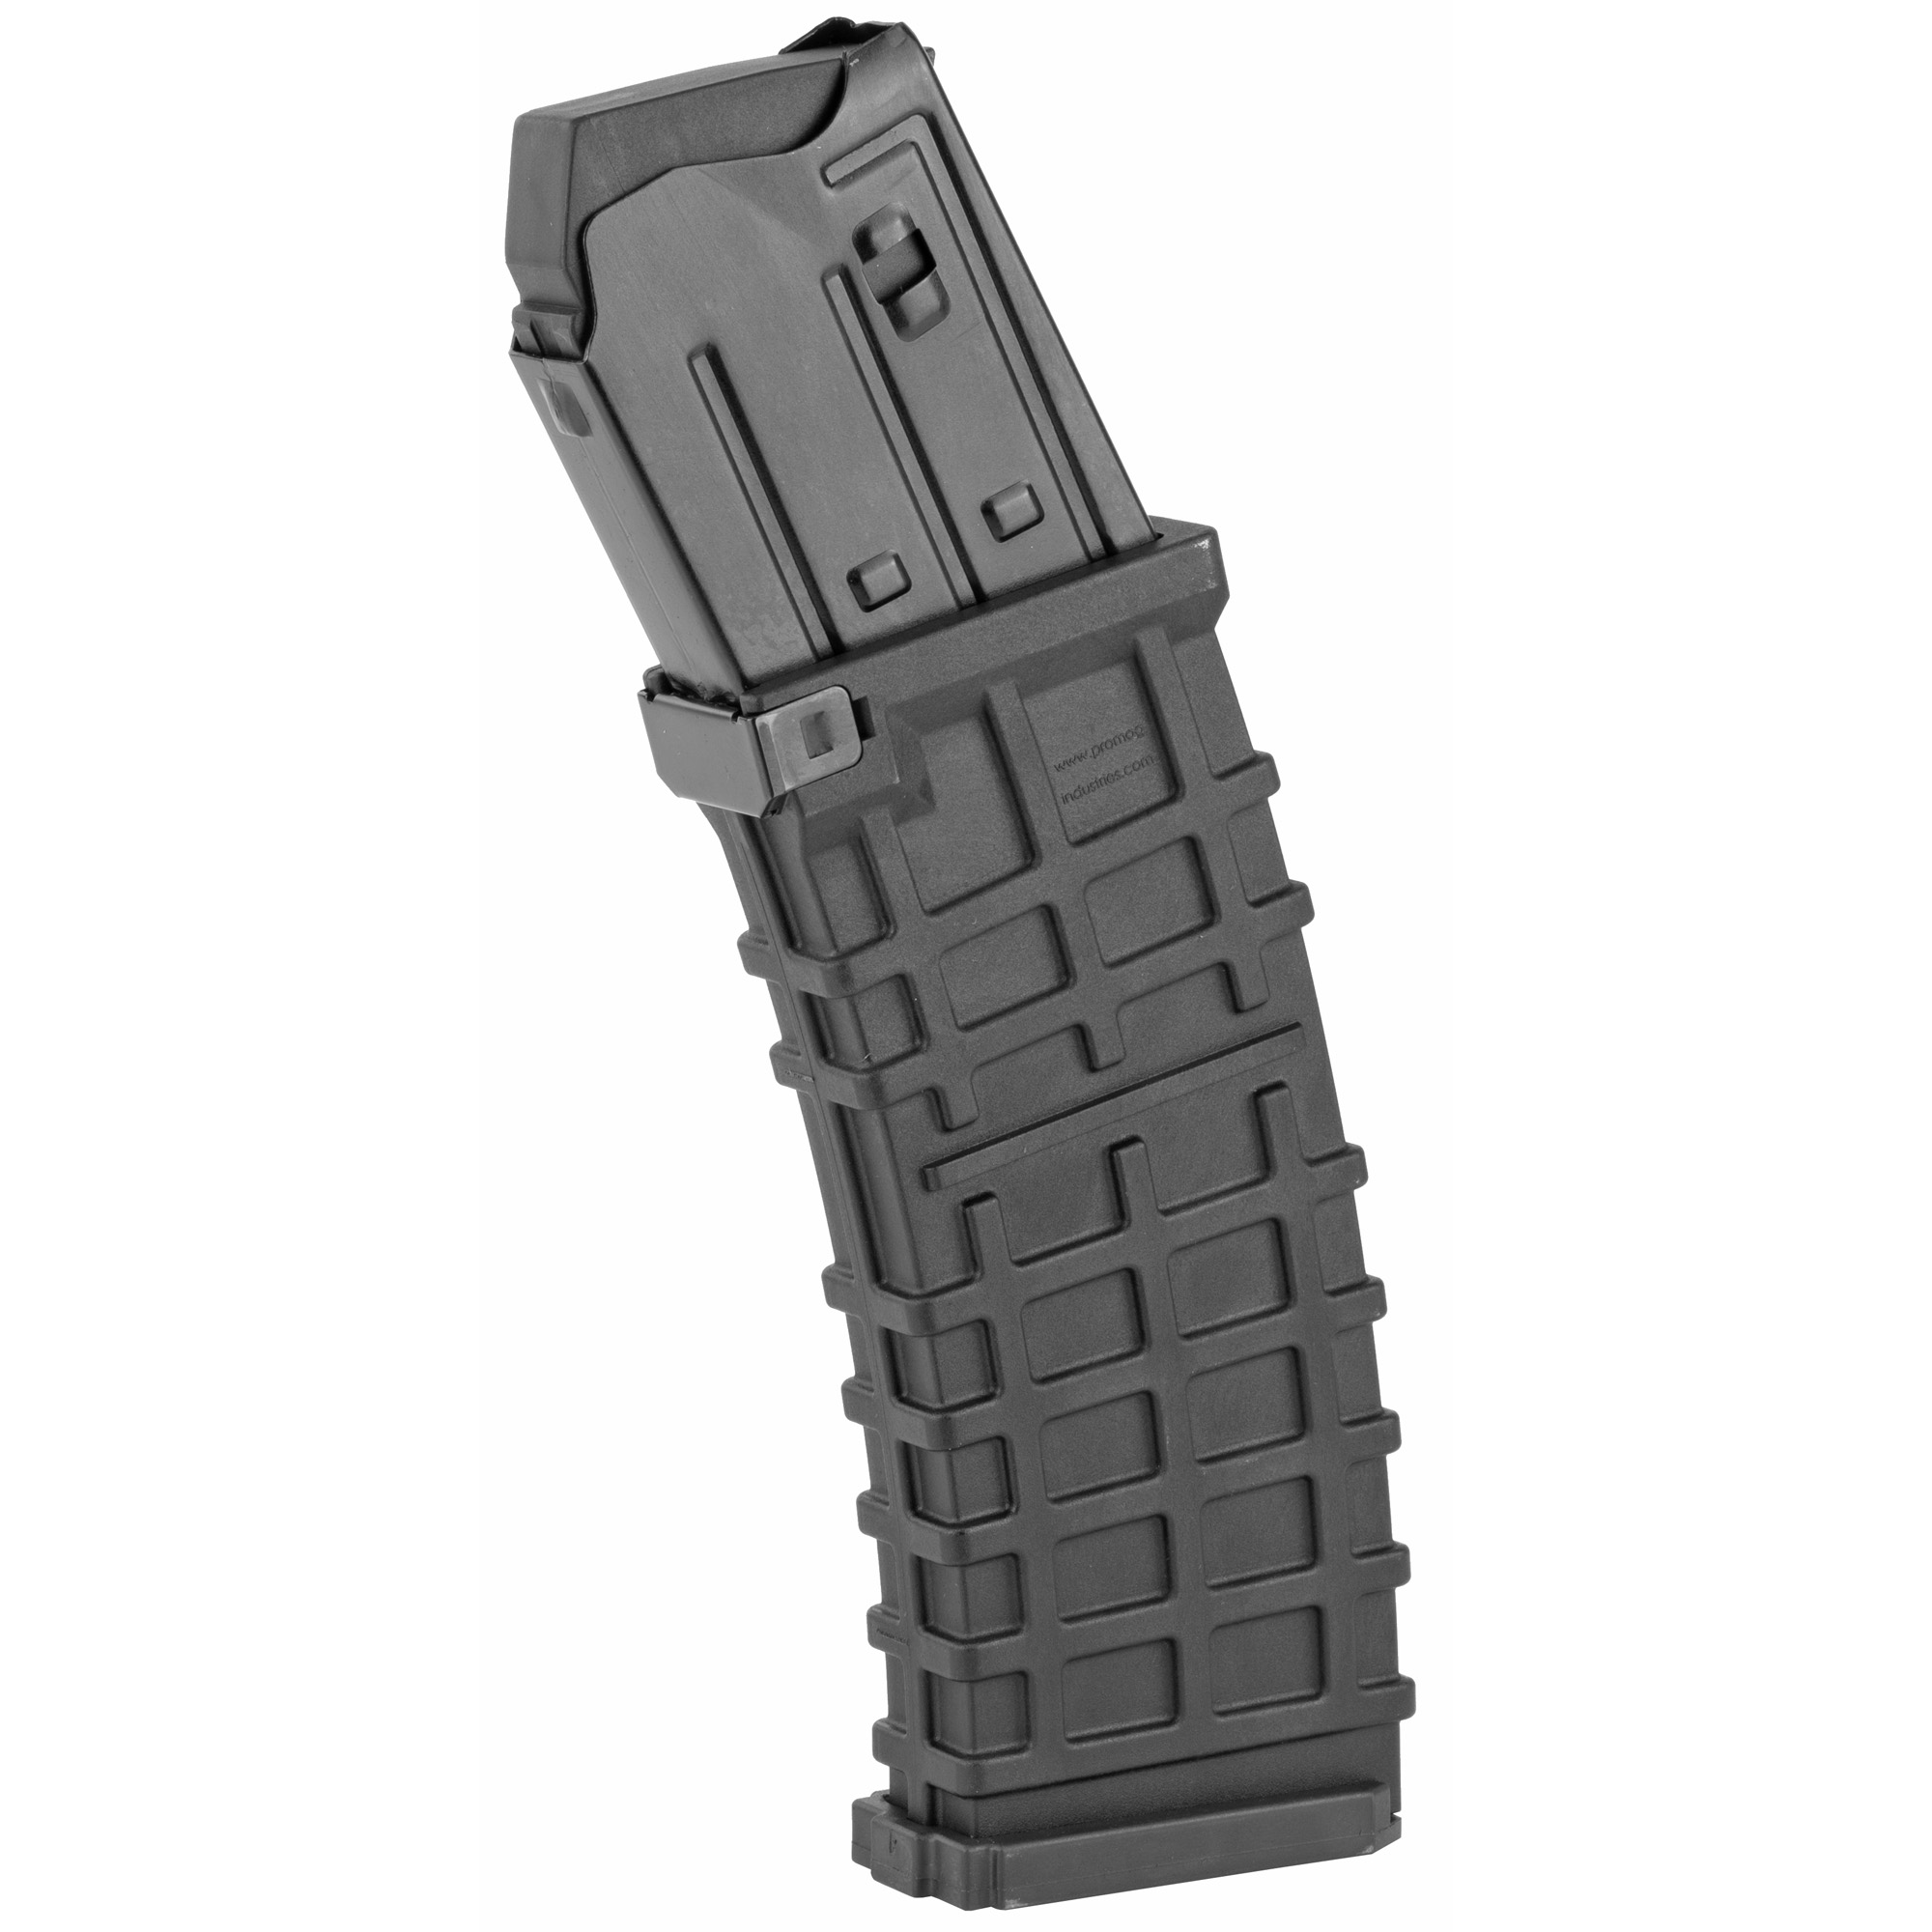 ProMag Promag Mka 1923 12ga 10rd Blk Poly